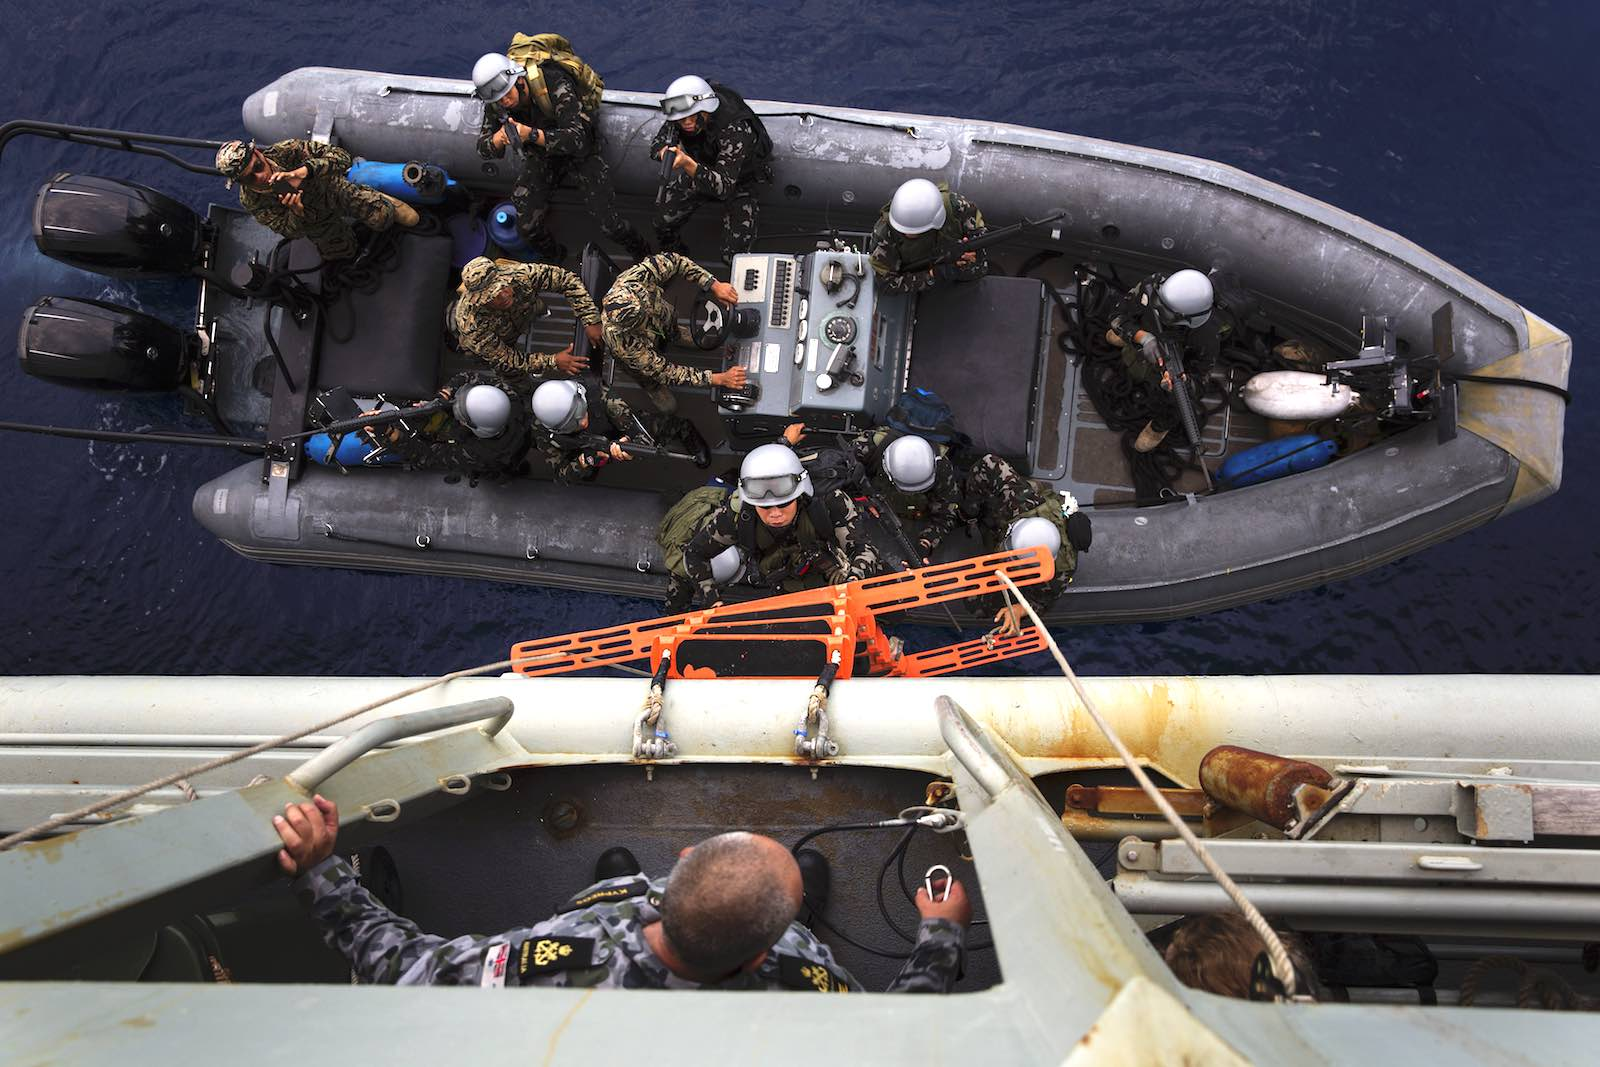 Members of the Armed Forces of the Philippines conduct a boarding exercise onboard HMAS Anzac as part of Exercise Lumbas 2018 (Department of Defence)